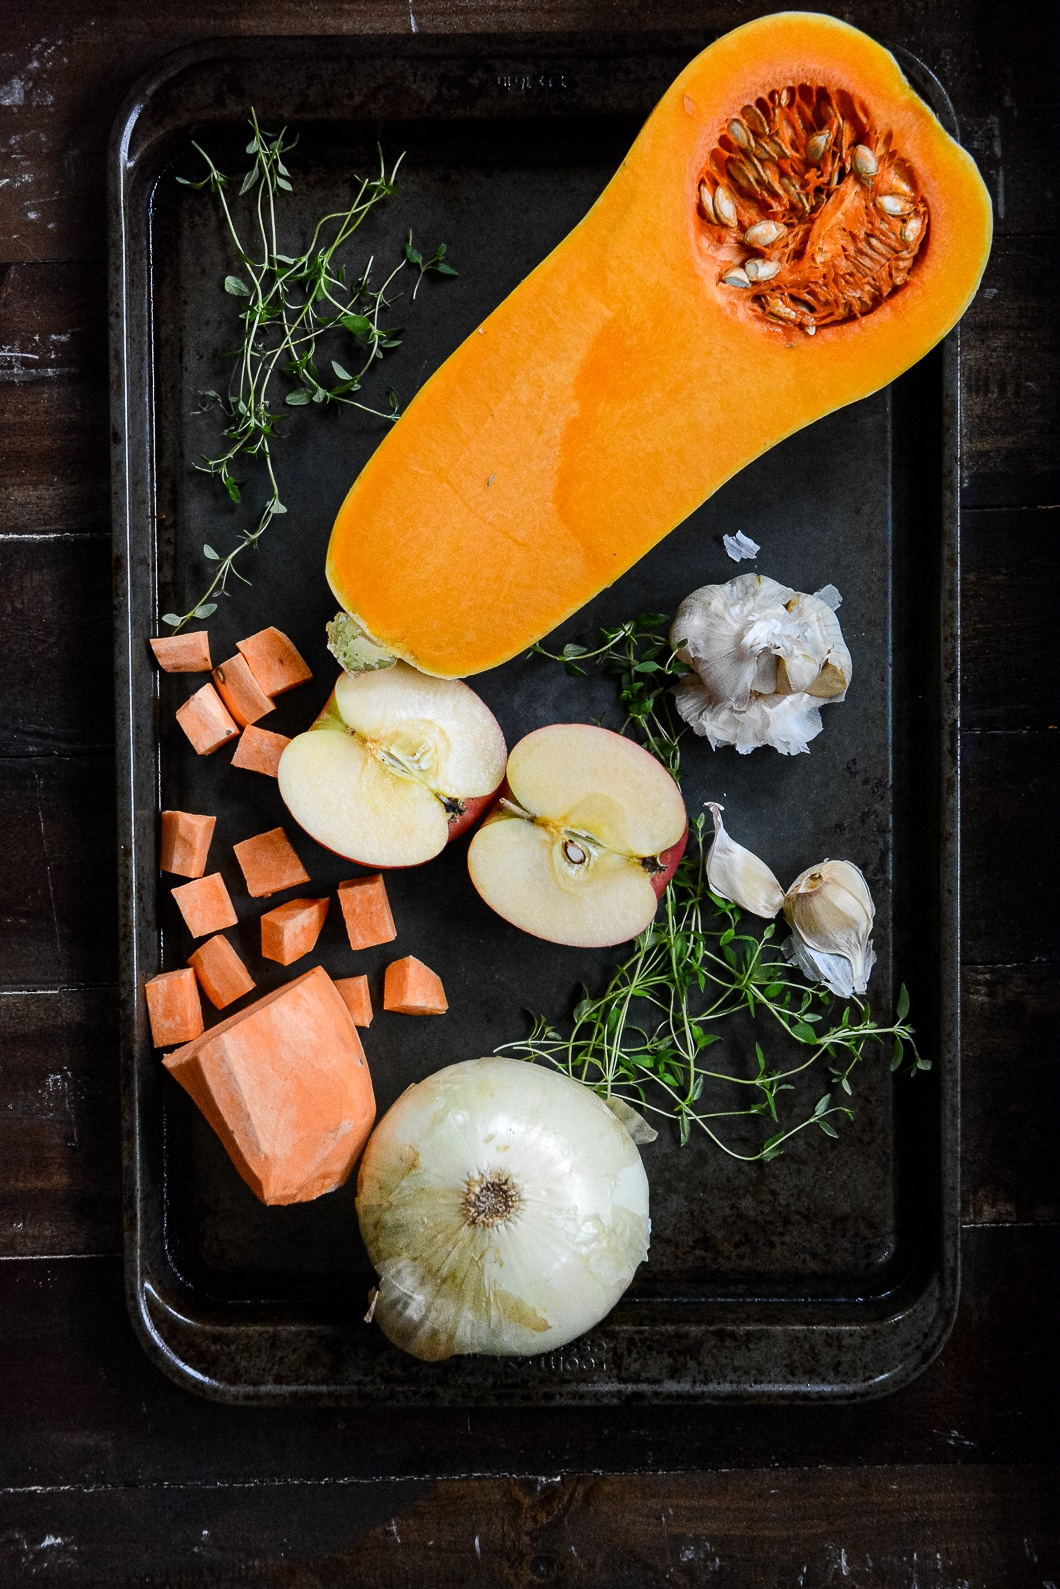 Roasting tray with half of butternut squash, cut up sweet potato, garlic, onion, apple and greens